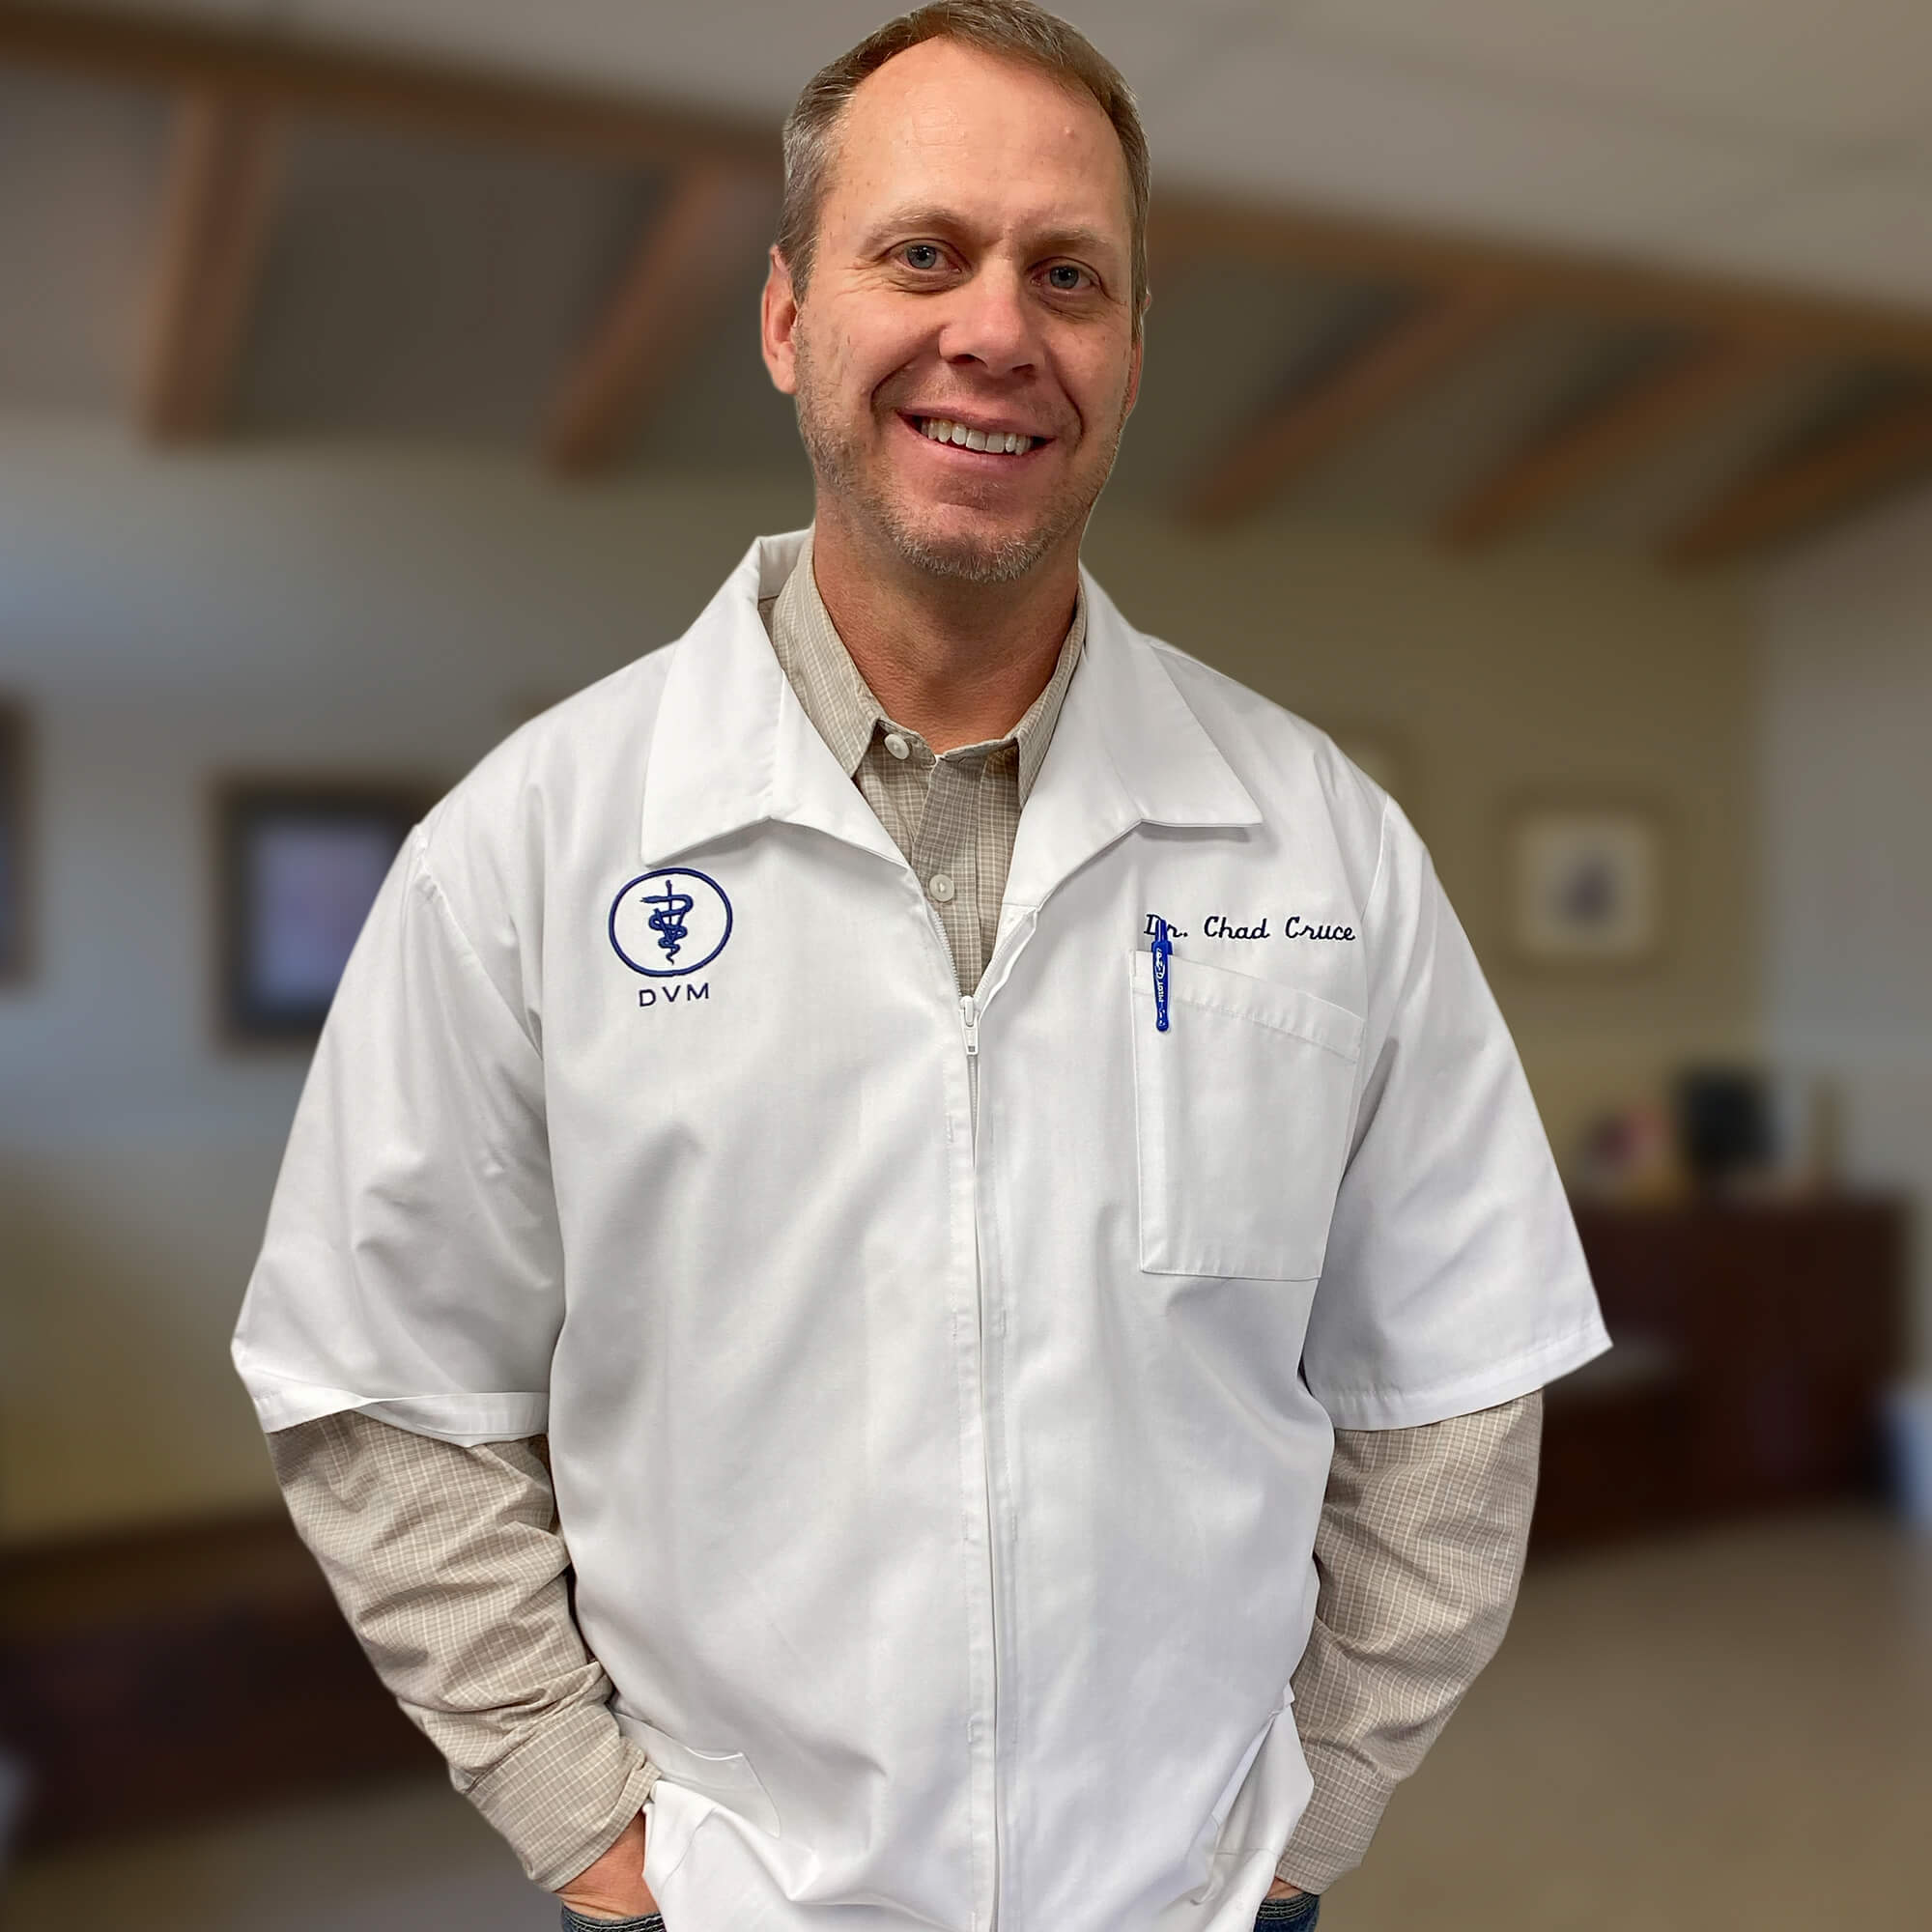 Dr. Chad Cruce, Animal Hospital of Denison, Hempkins Insurance Client